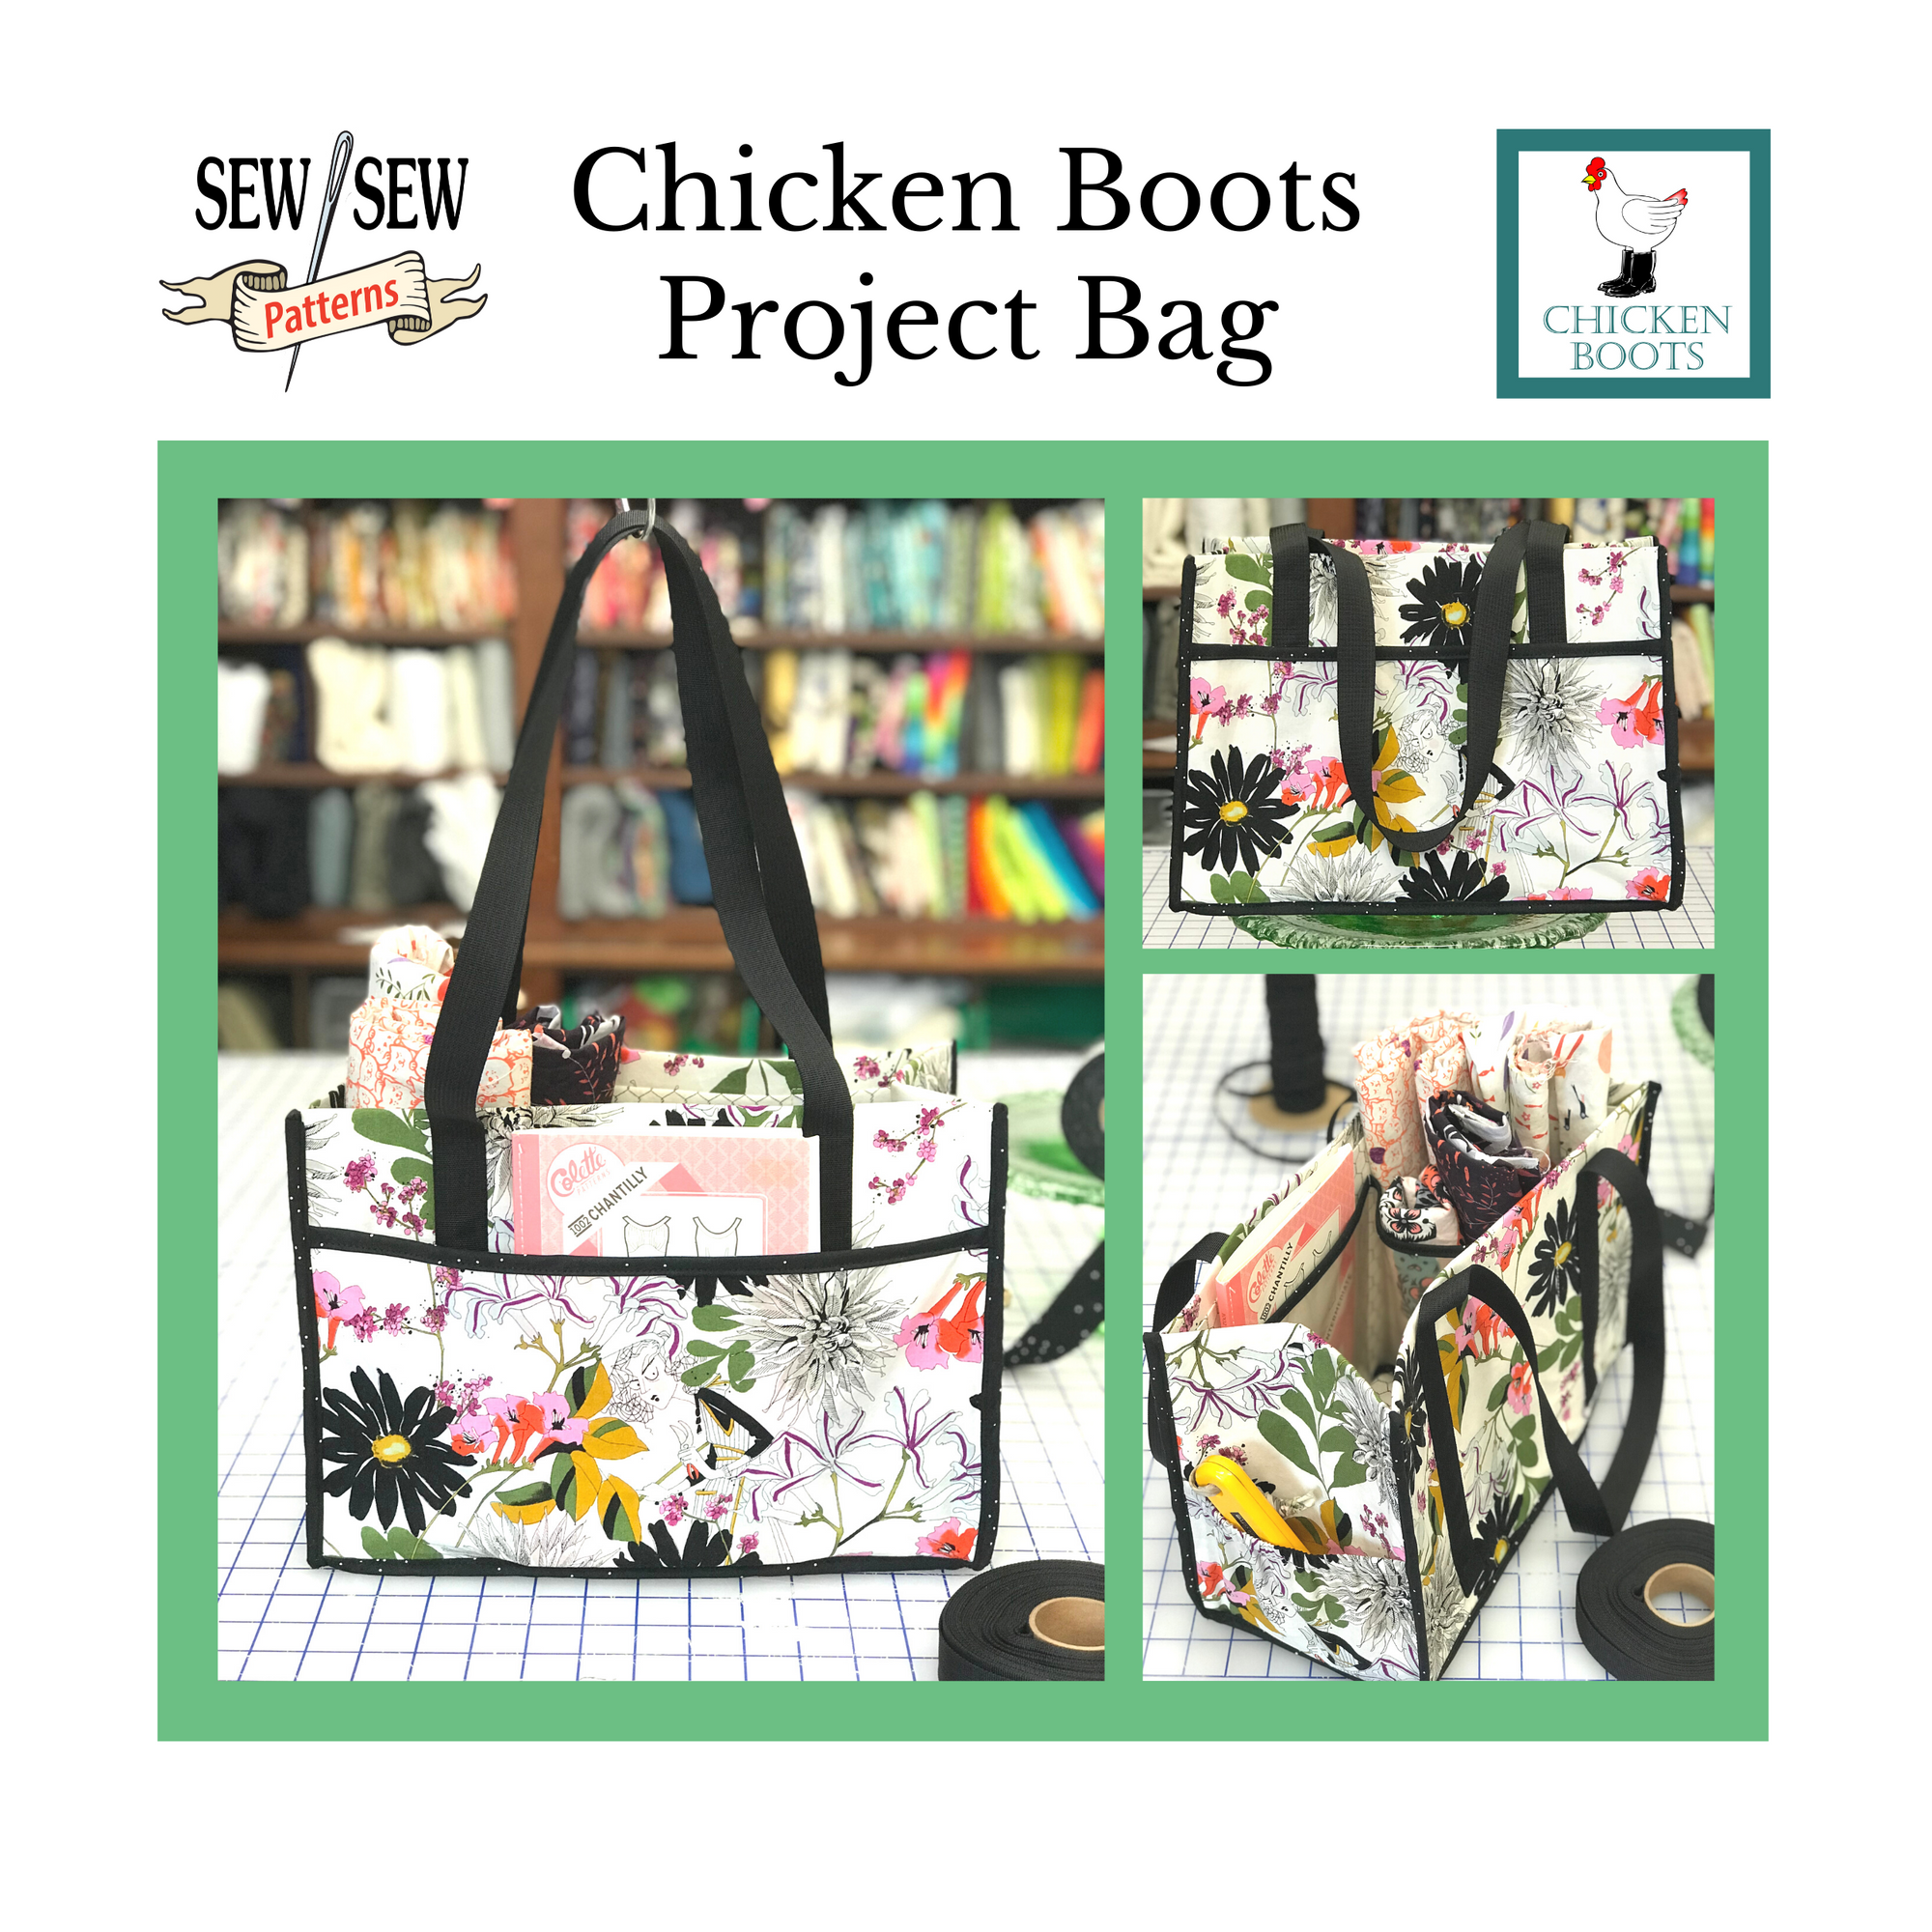 Chicken Boots Project Bag by Sew Sew Patterns